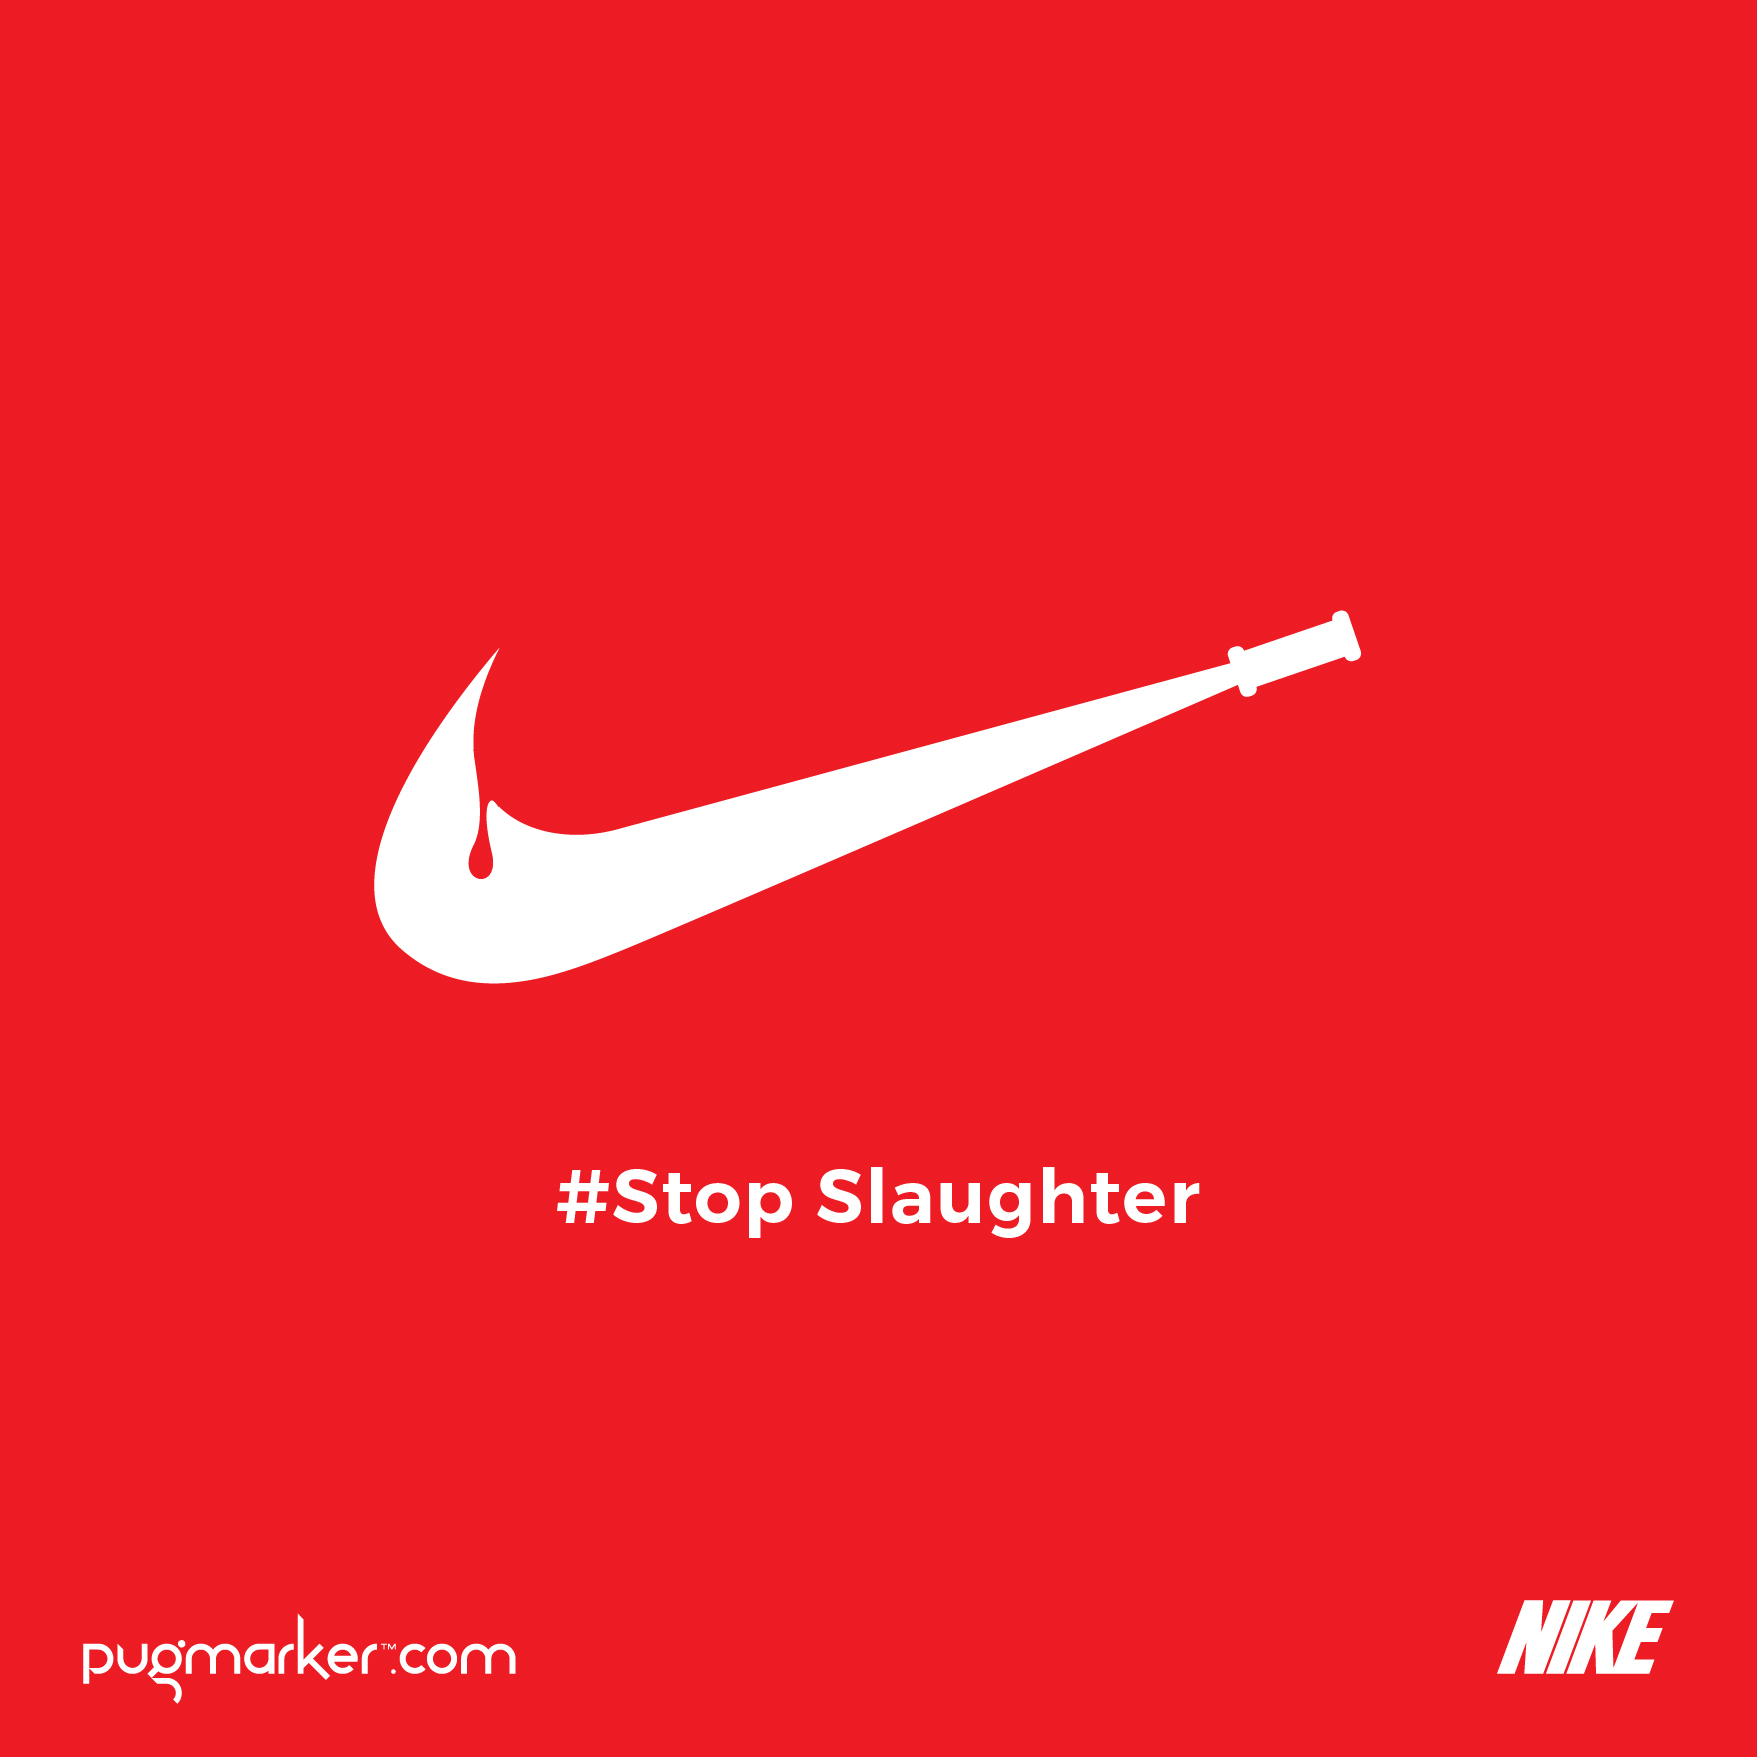 Nike - Stop Slaughter